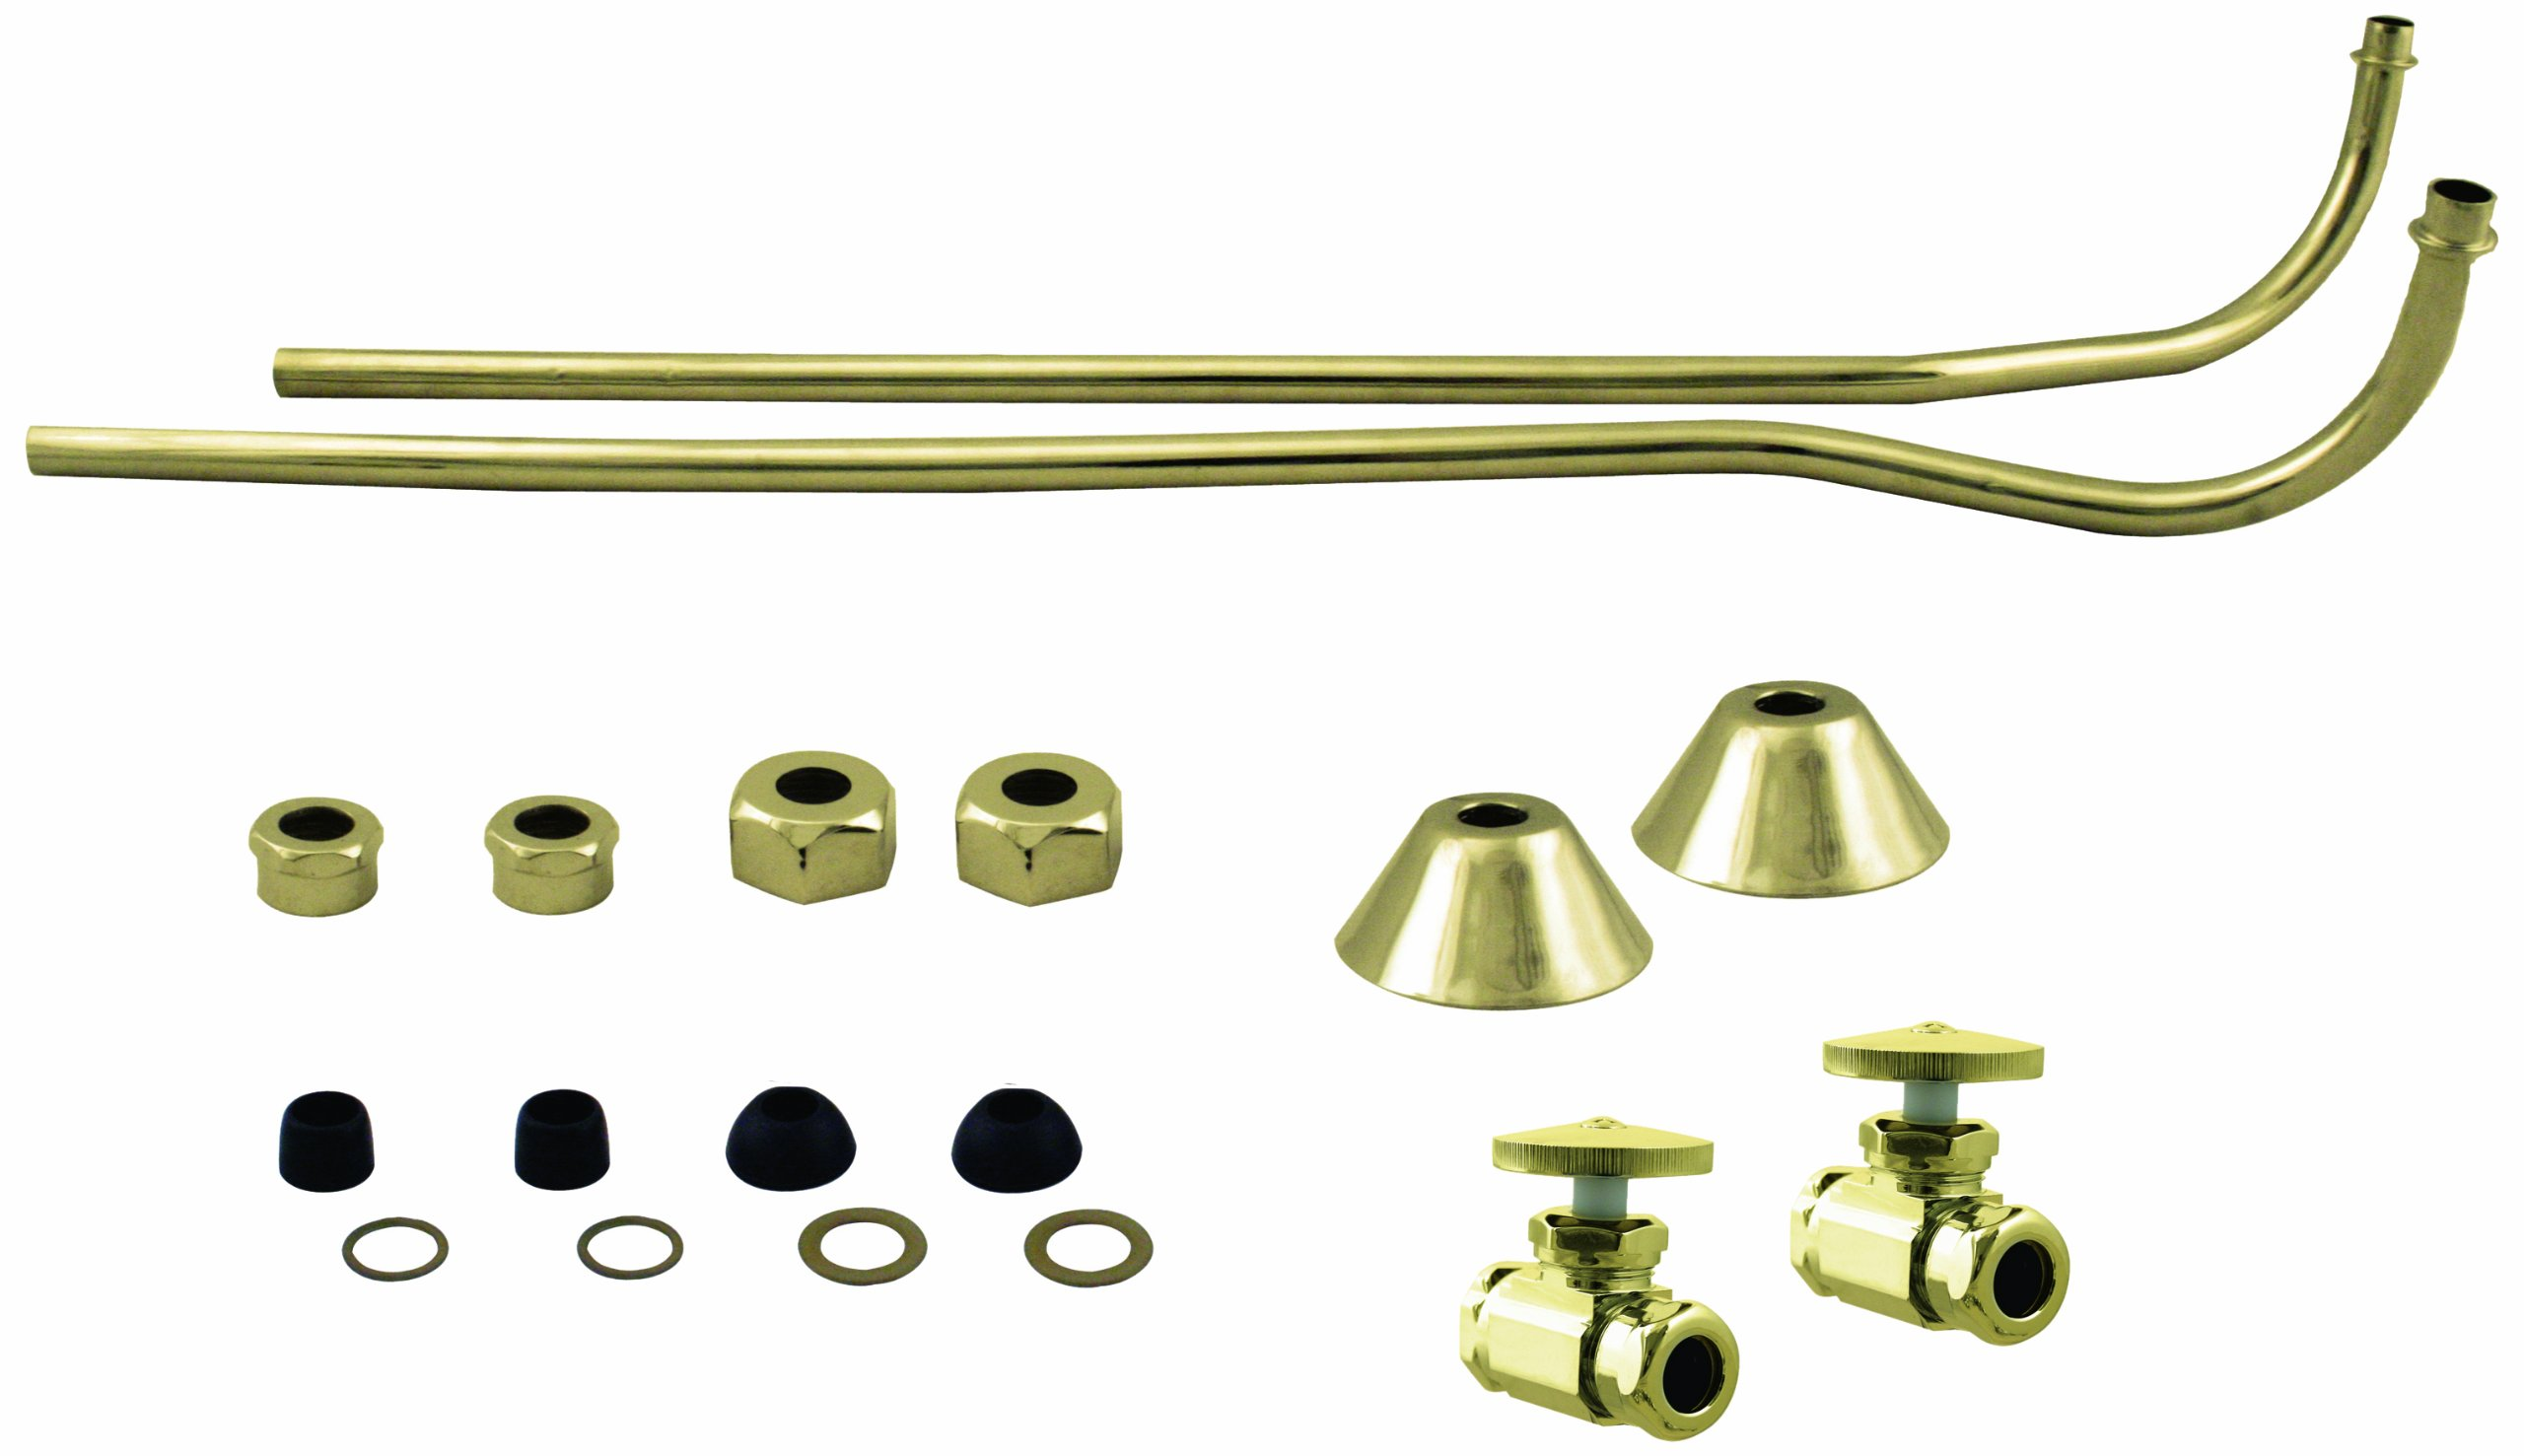 Westbrass Double Offset Bath Supply Lines with 1/2'' IPS Valves and Round Handles, Polished Brass, D136-108-01